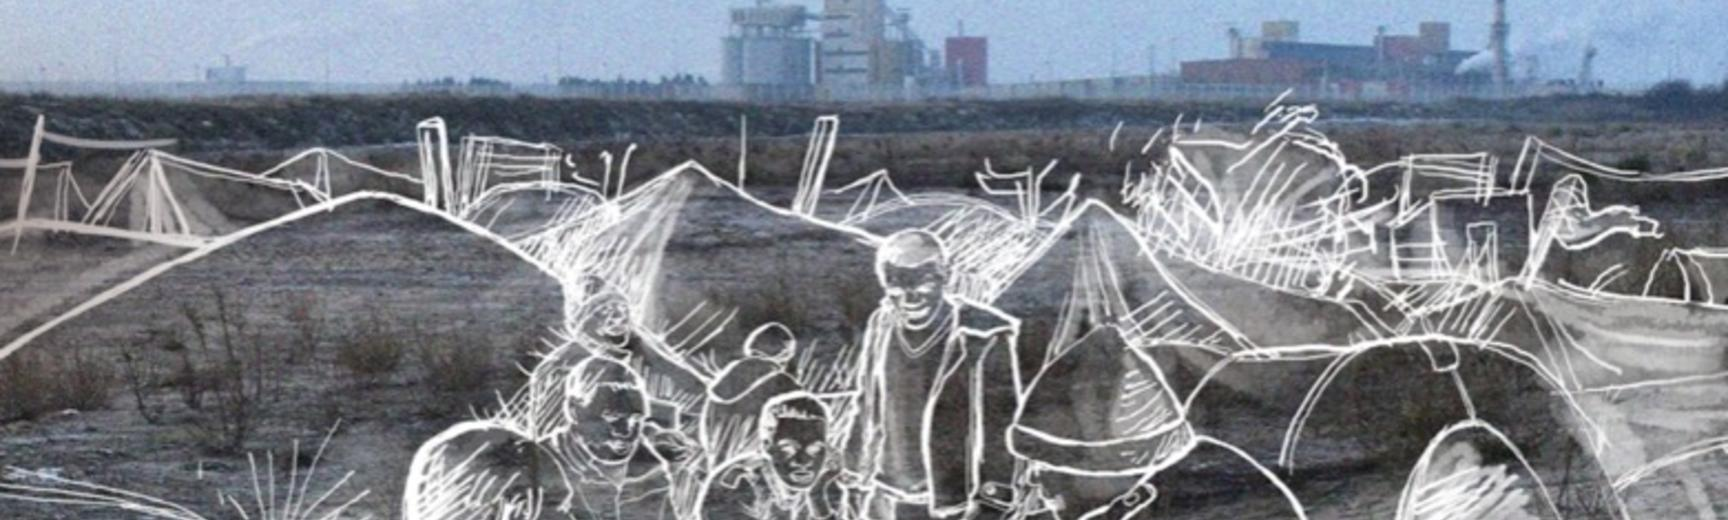 Dan Hicks and Sarah Mallet, Lande: The Calais 'Jungle' and Beyond (Bristol: Bristol University Press, 2019). ISBN 978-1-5292-0787-3. Book cover illustration by Majid Adin.